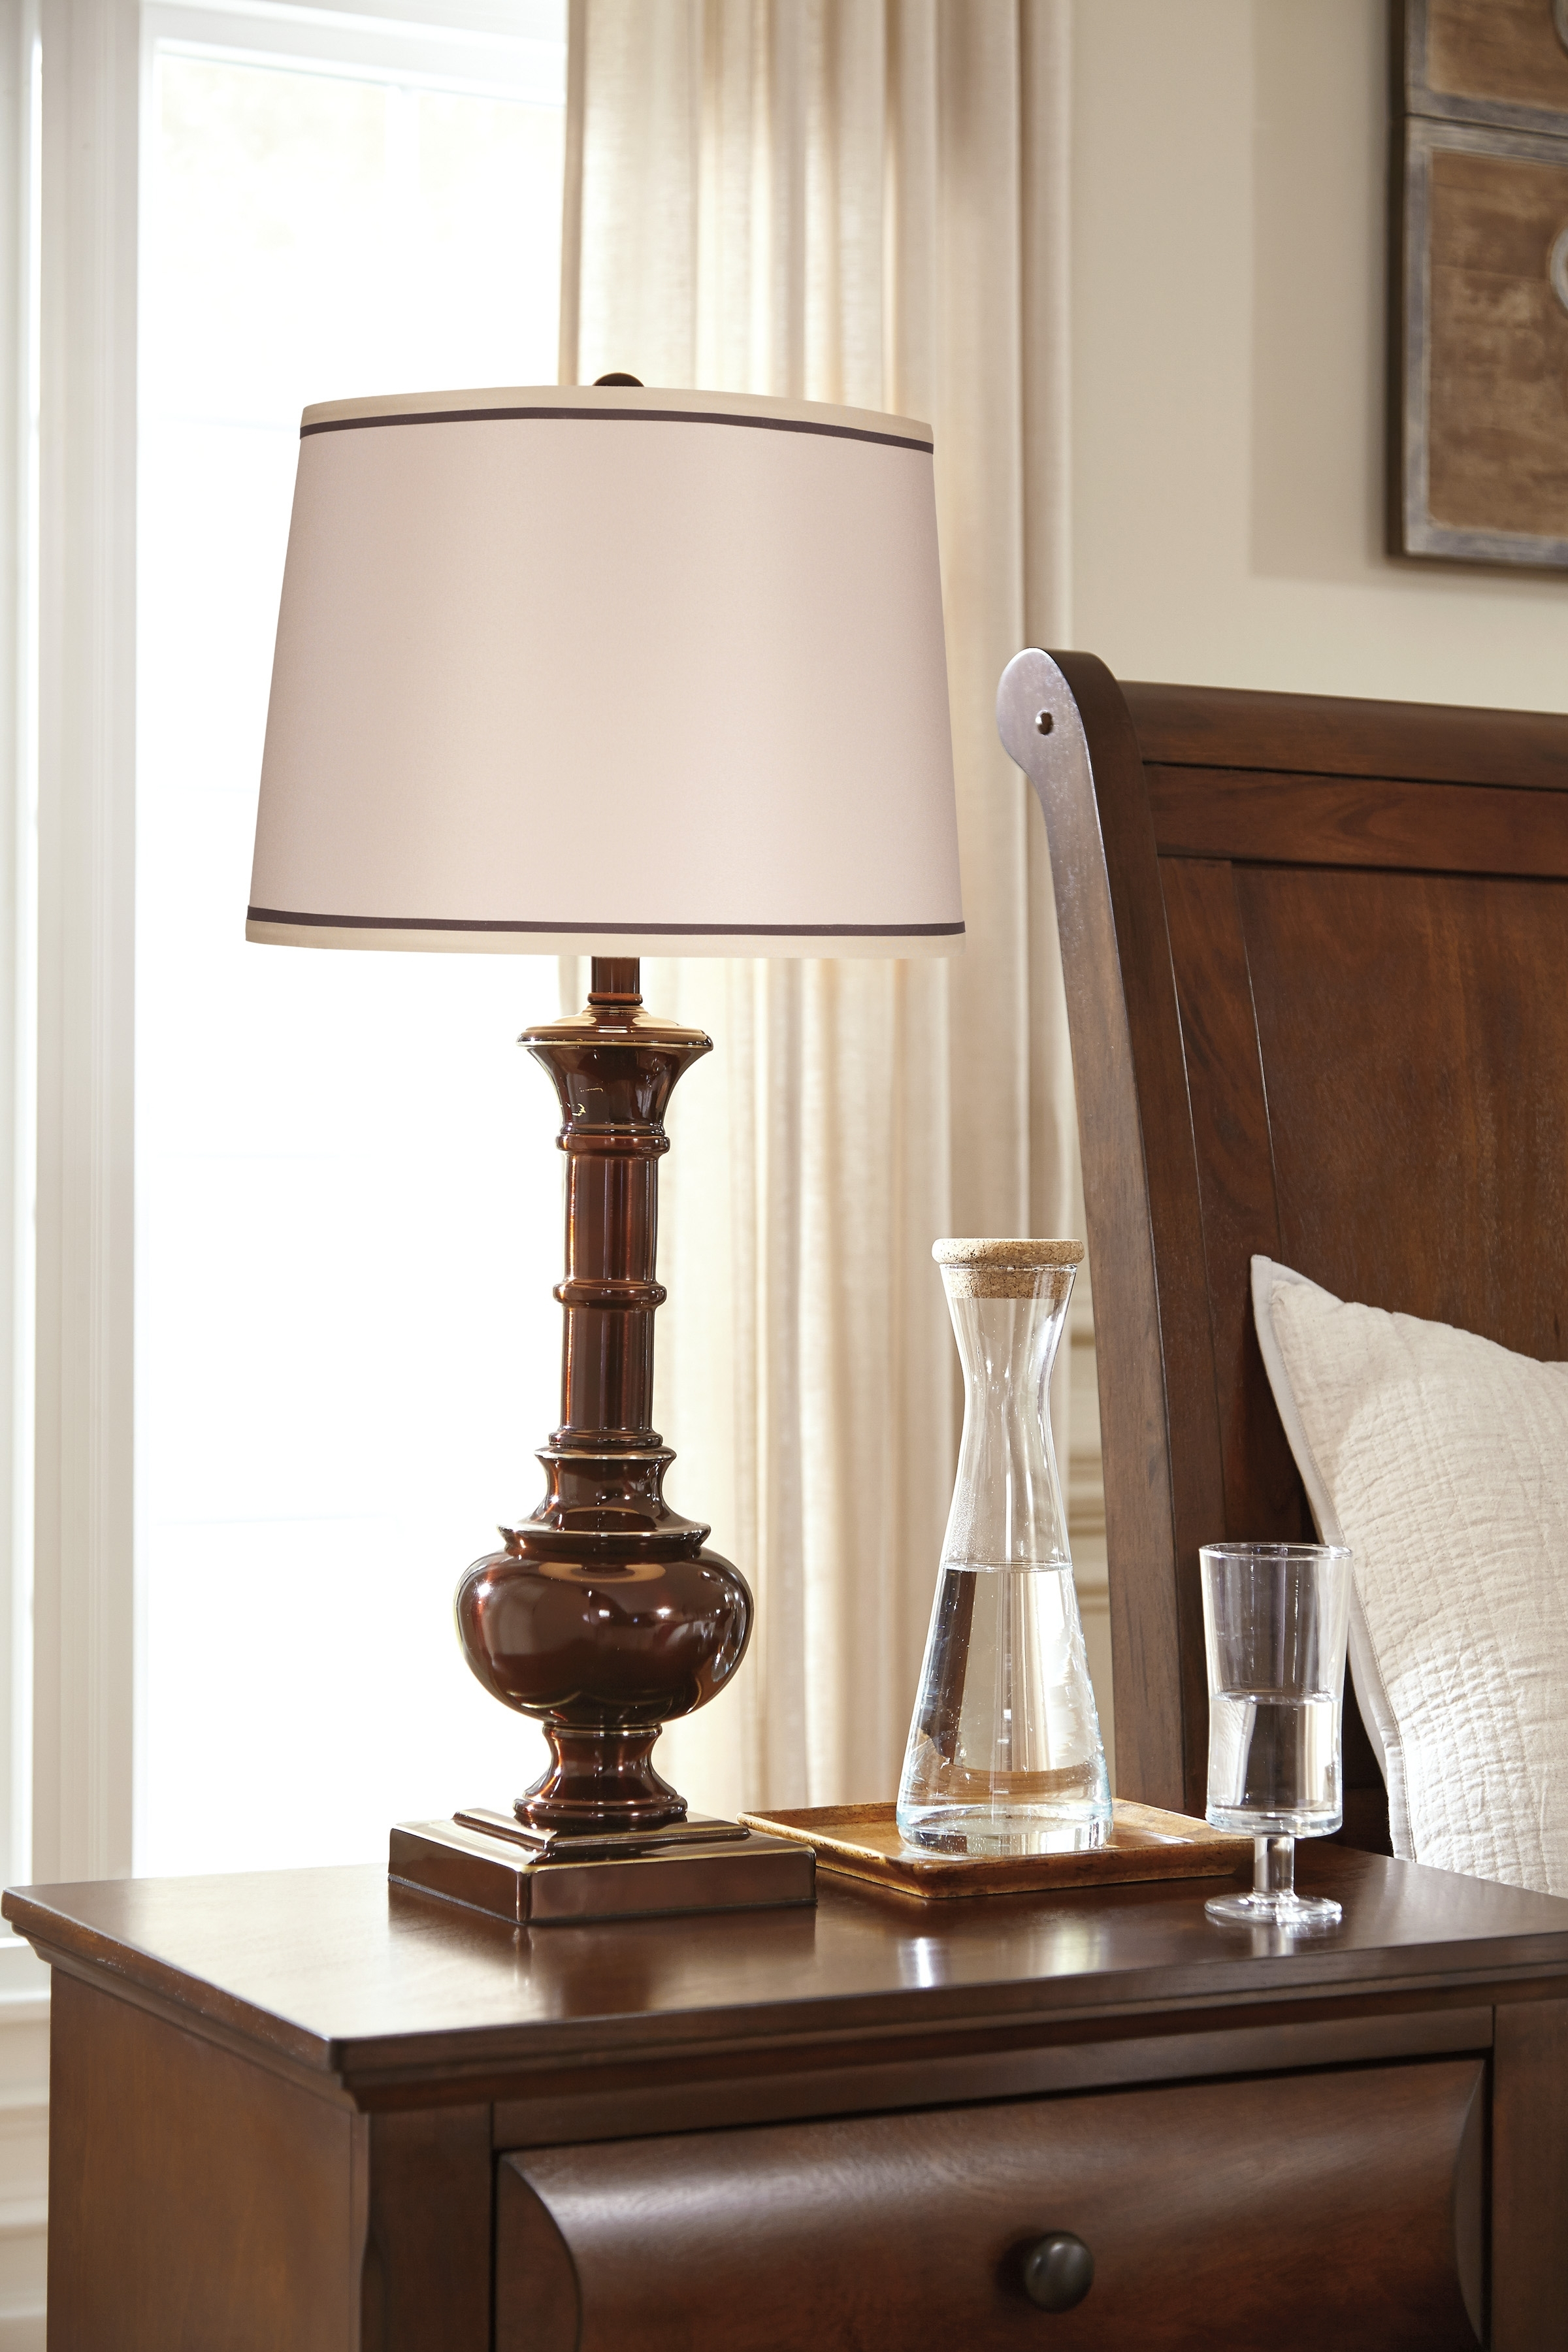 Popular Lamp : Living Room Table Lamps Creative Design Picture Target New With Country Living Room Table Lamps (View 12 of 15)